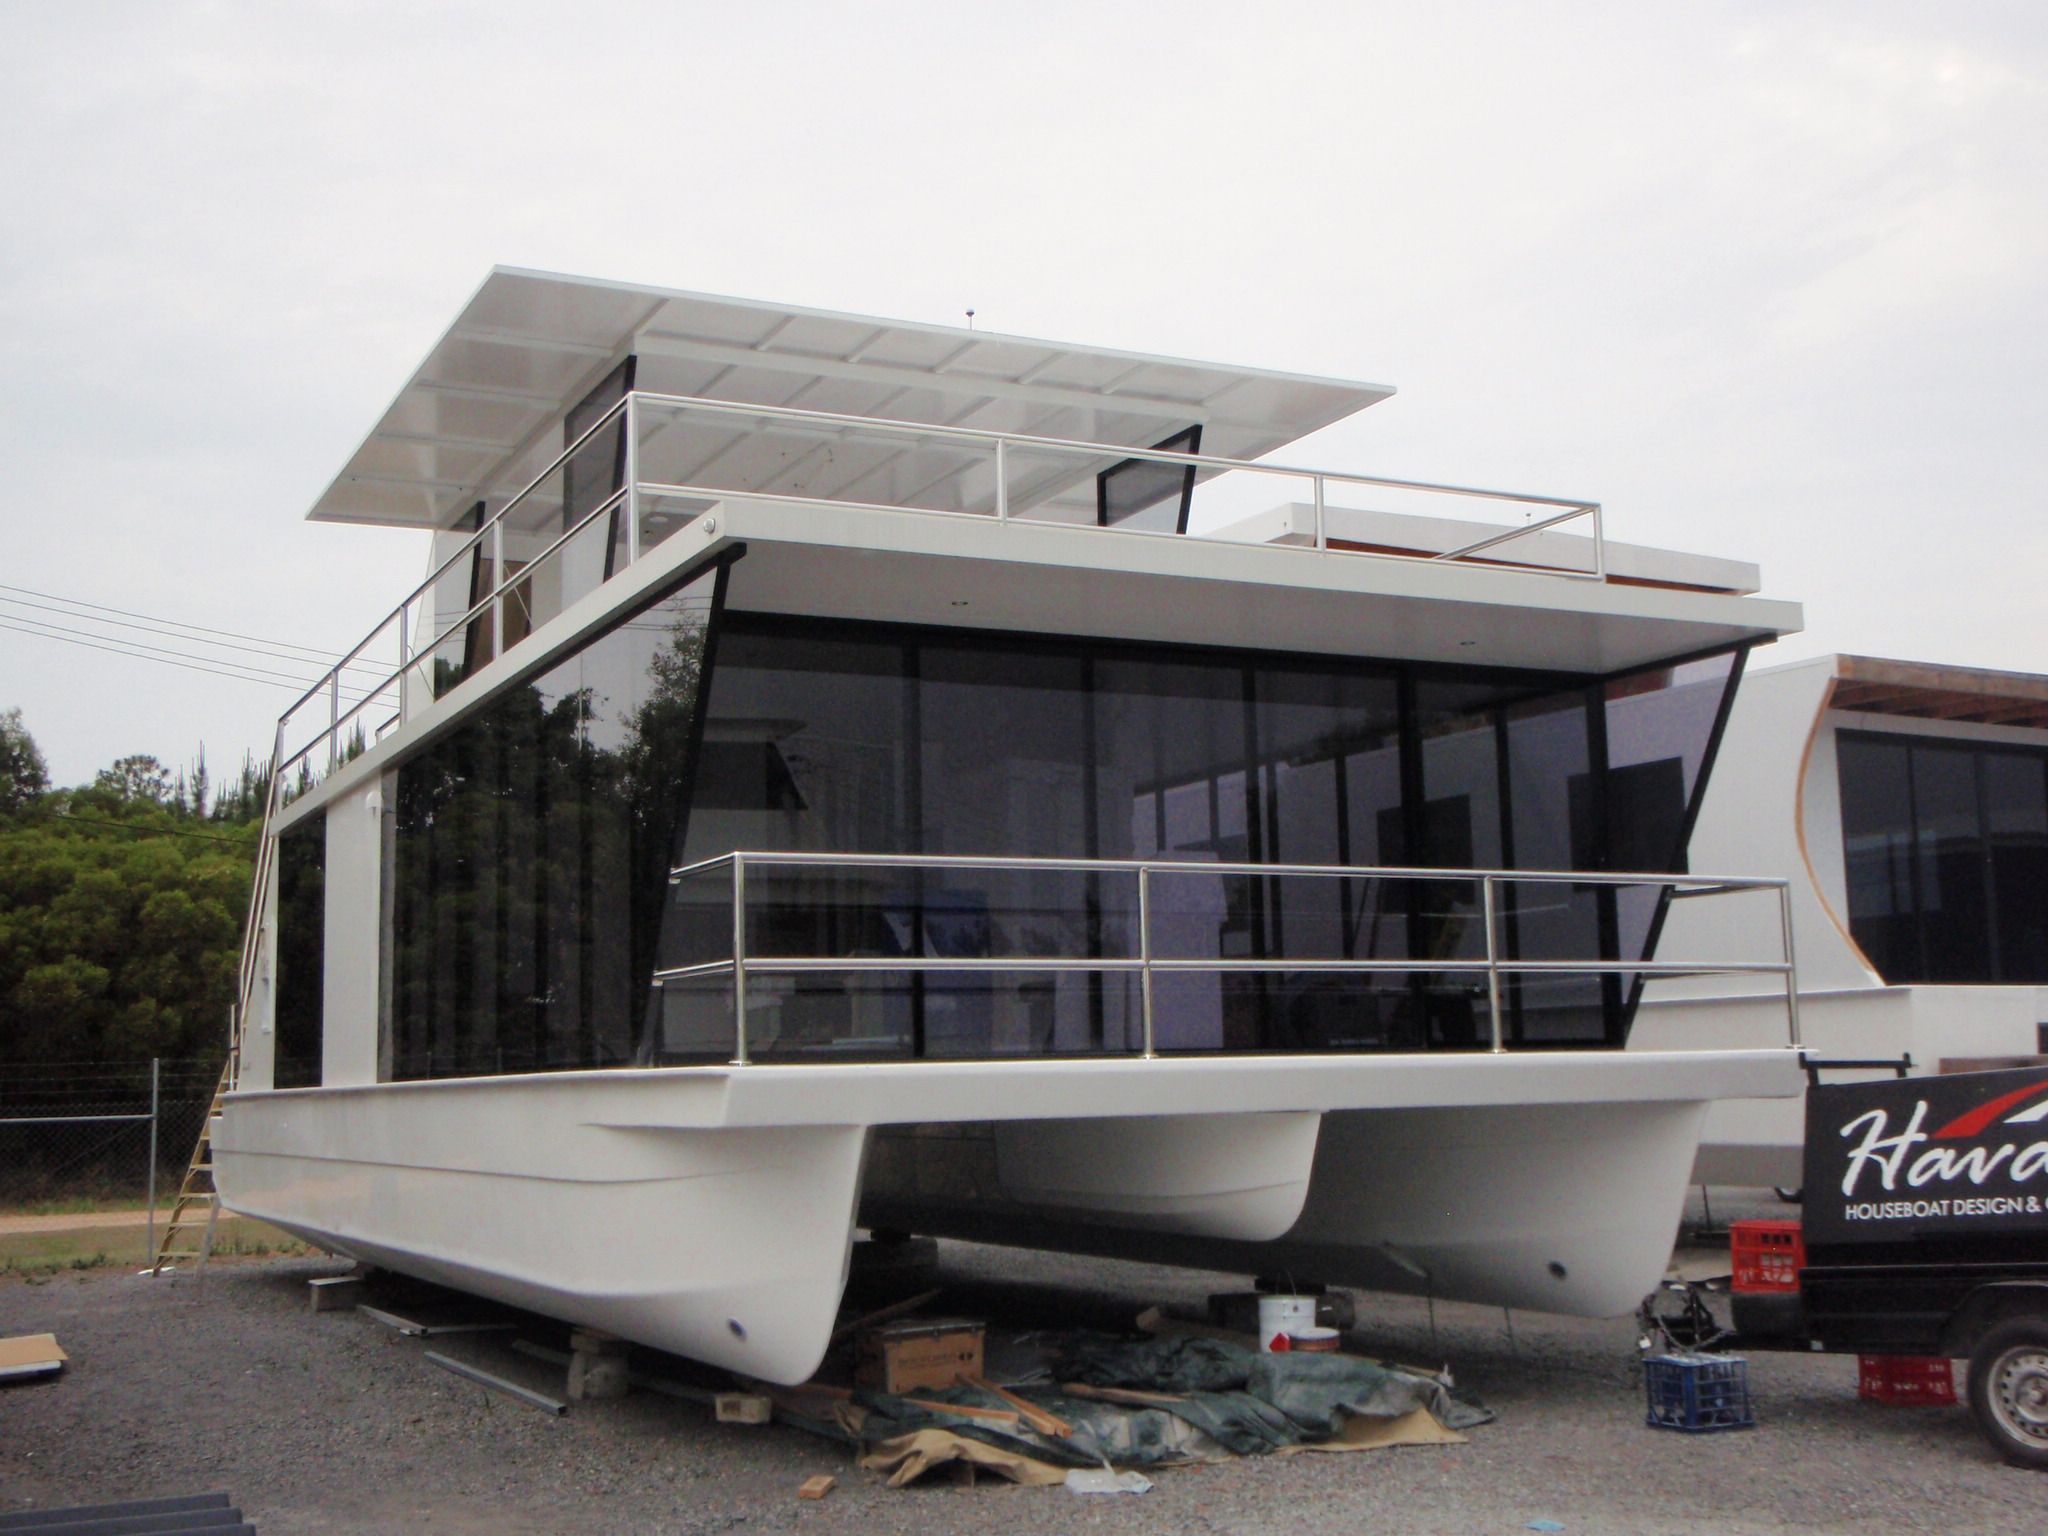 Houseboat/Homecruiser. Love the airy, sleek design.